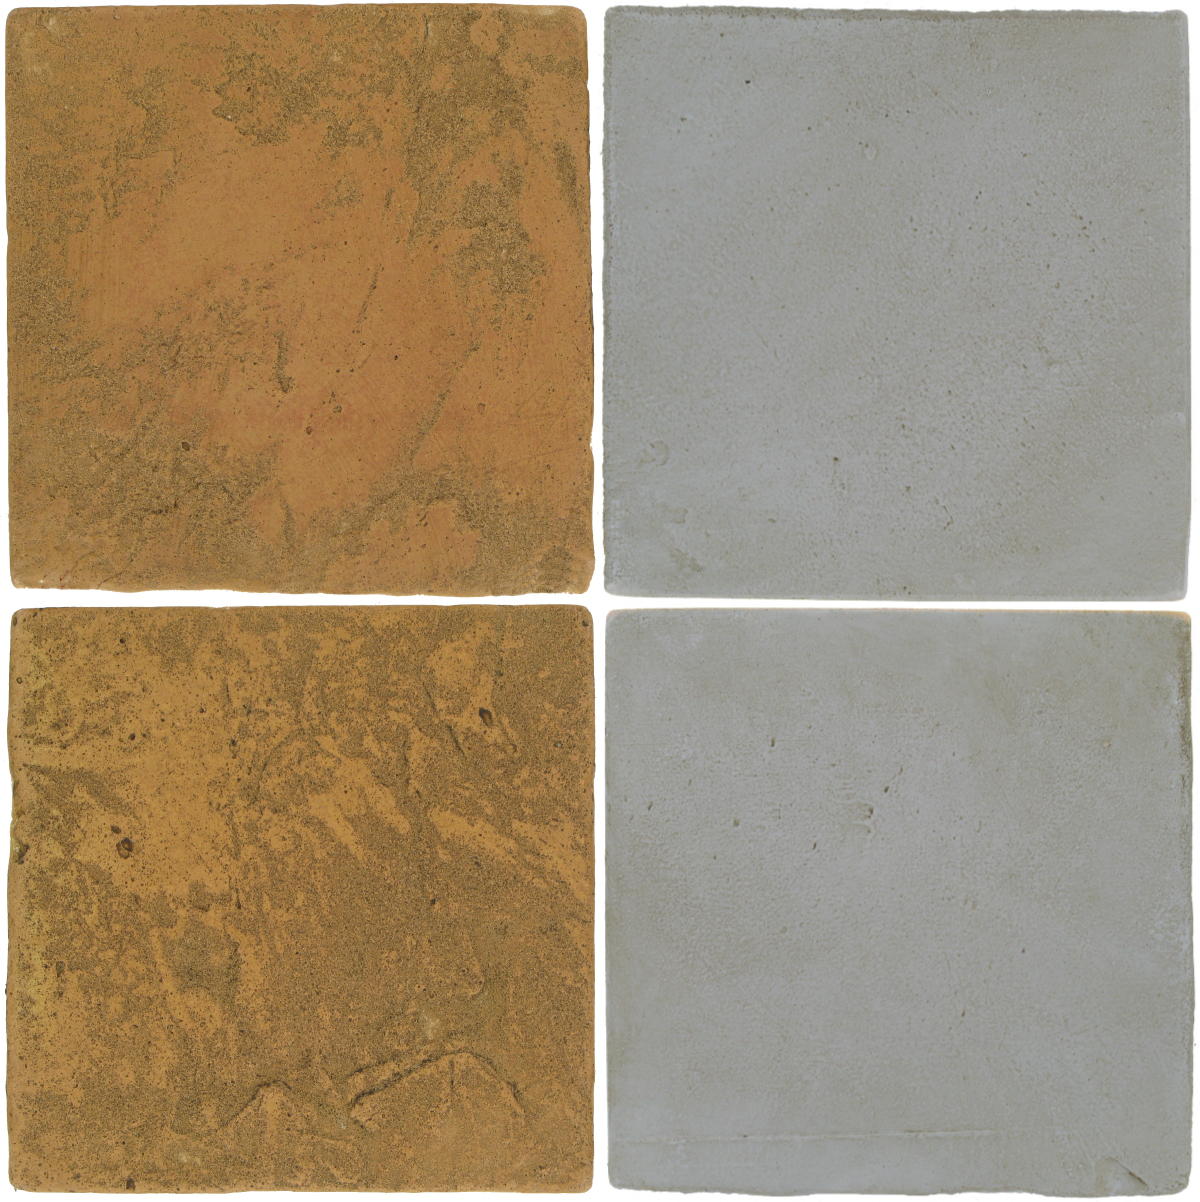 Pedralbes Antique Terracotta  2 Color Combinations  VTG-PSSW Siena Wheat + OHS-PGOG Oyster Grey